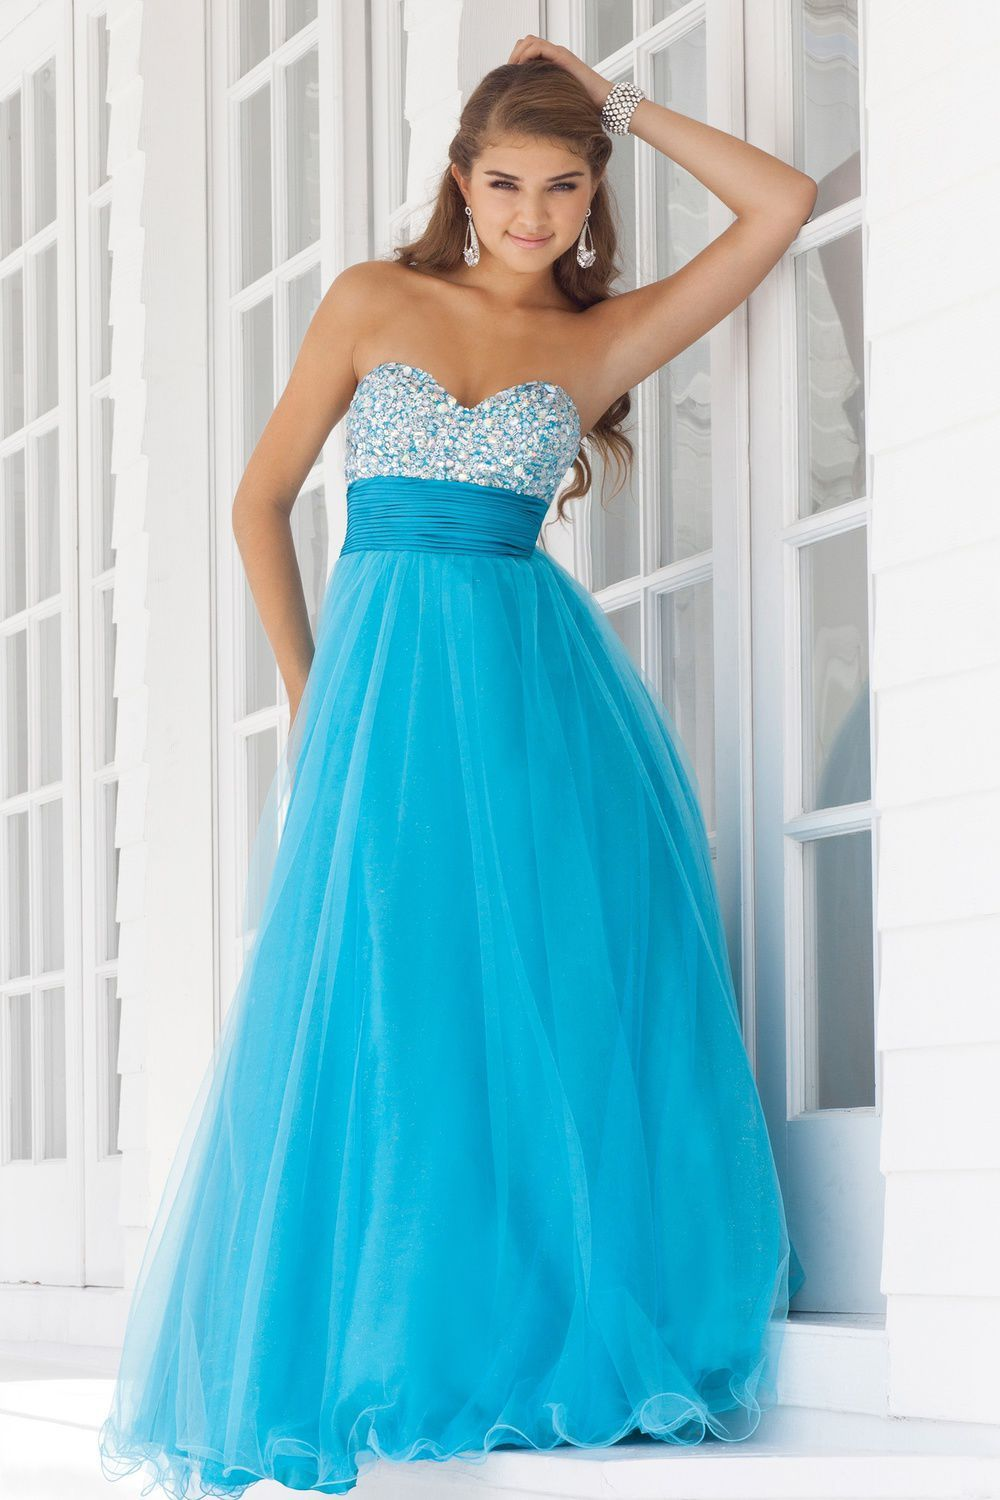 Sparkles at the top of the dress is so pretty! I would wear this as ...